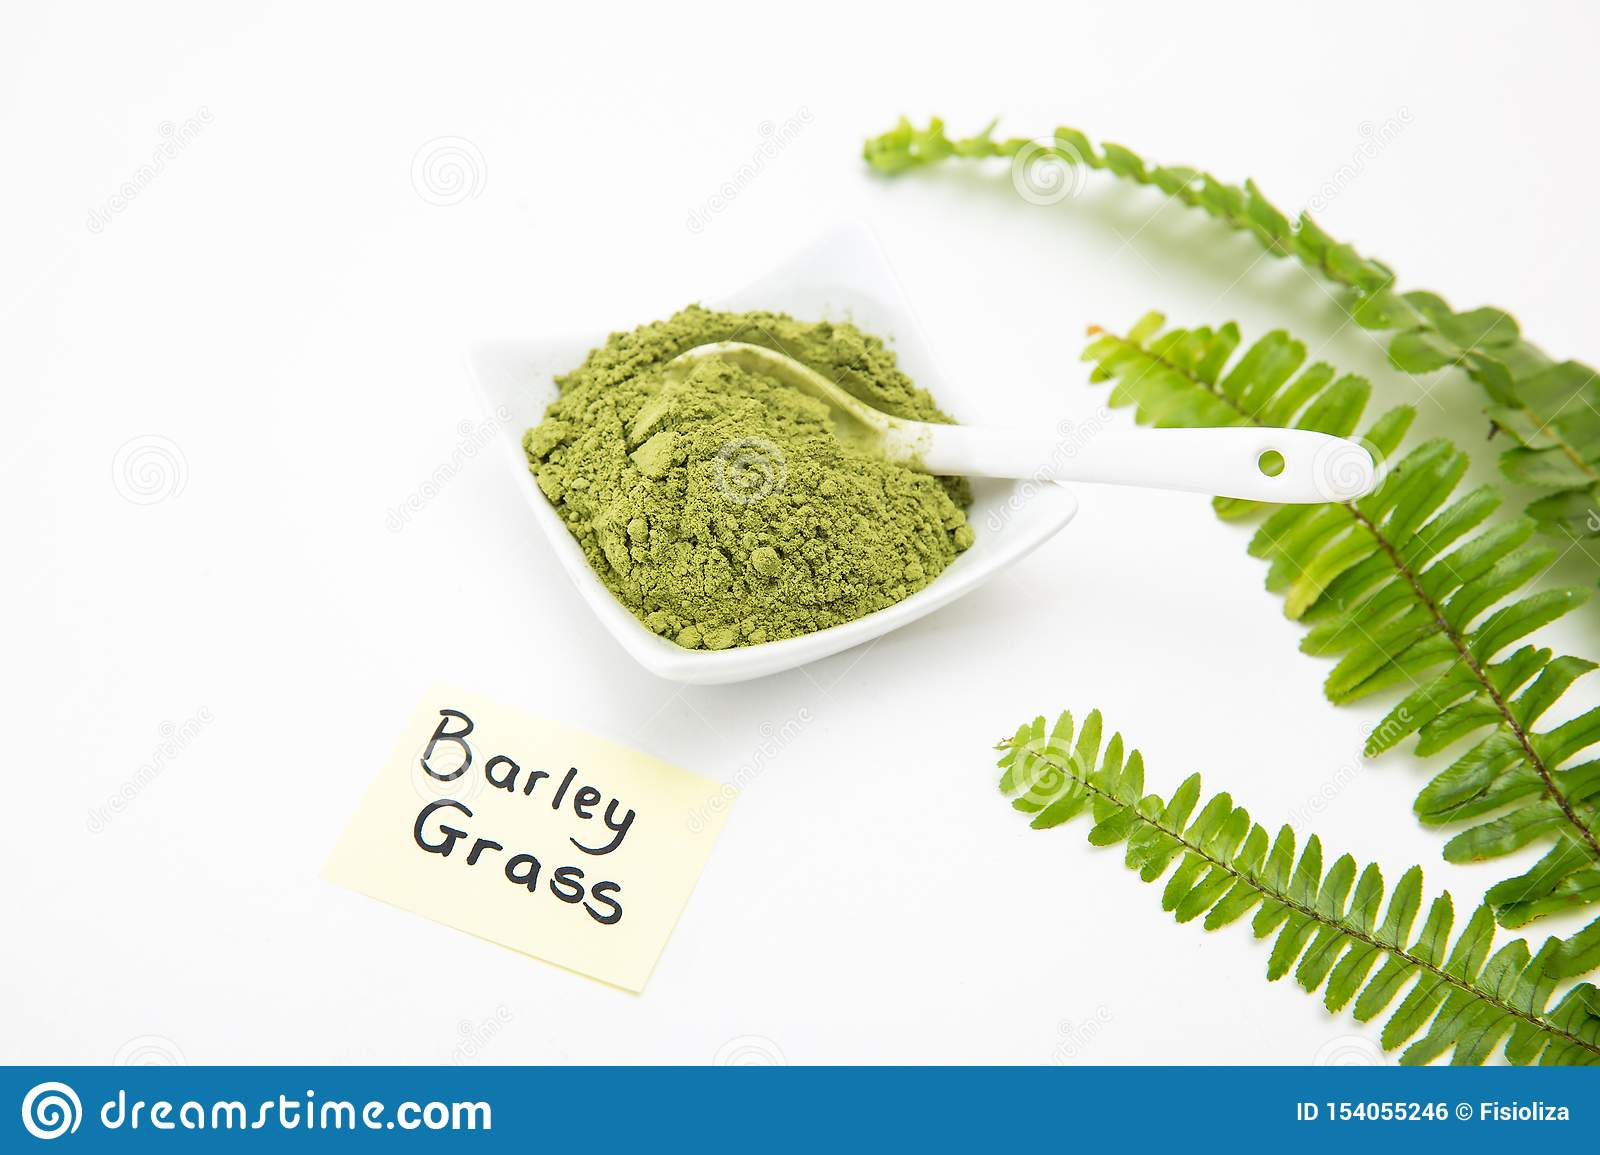 Barley Grass Green Powder, A Superfood For Health And